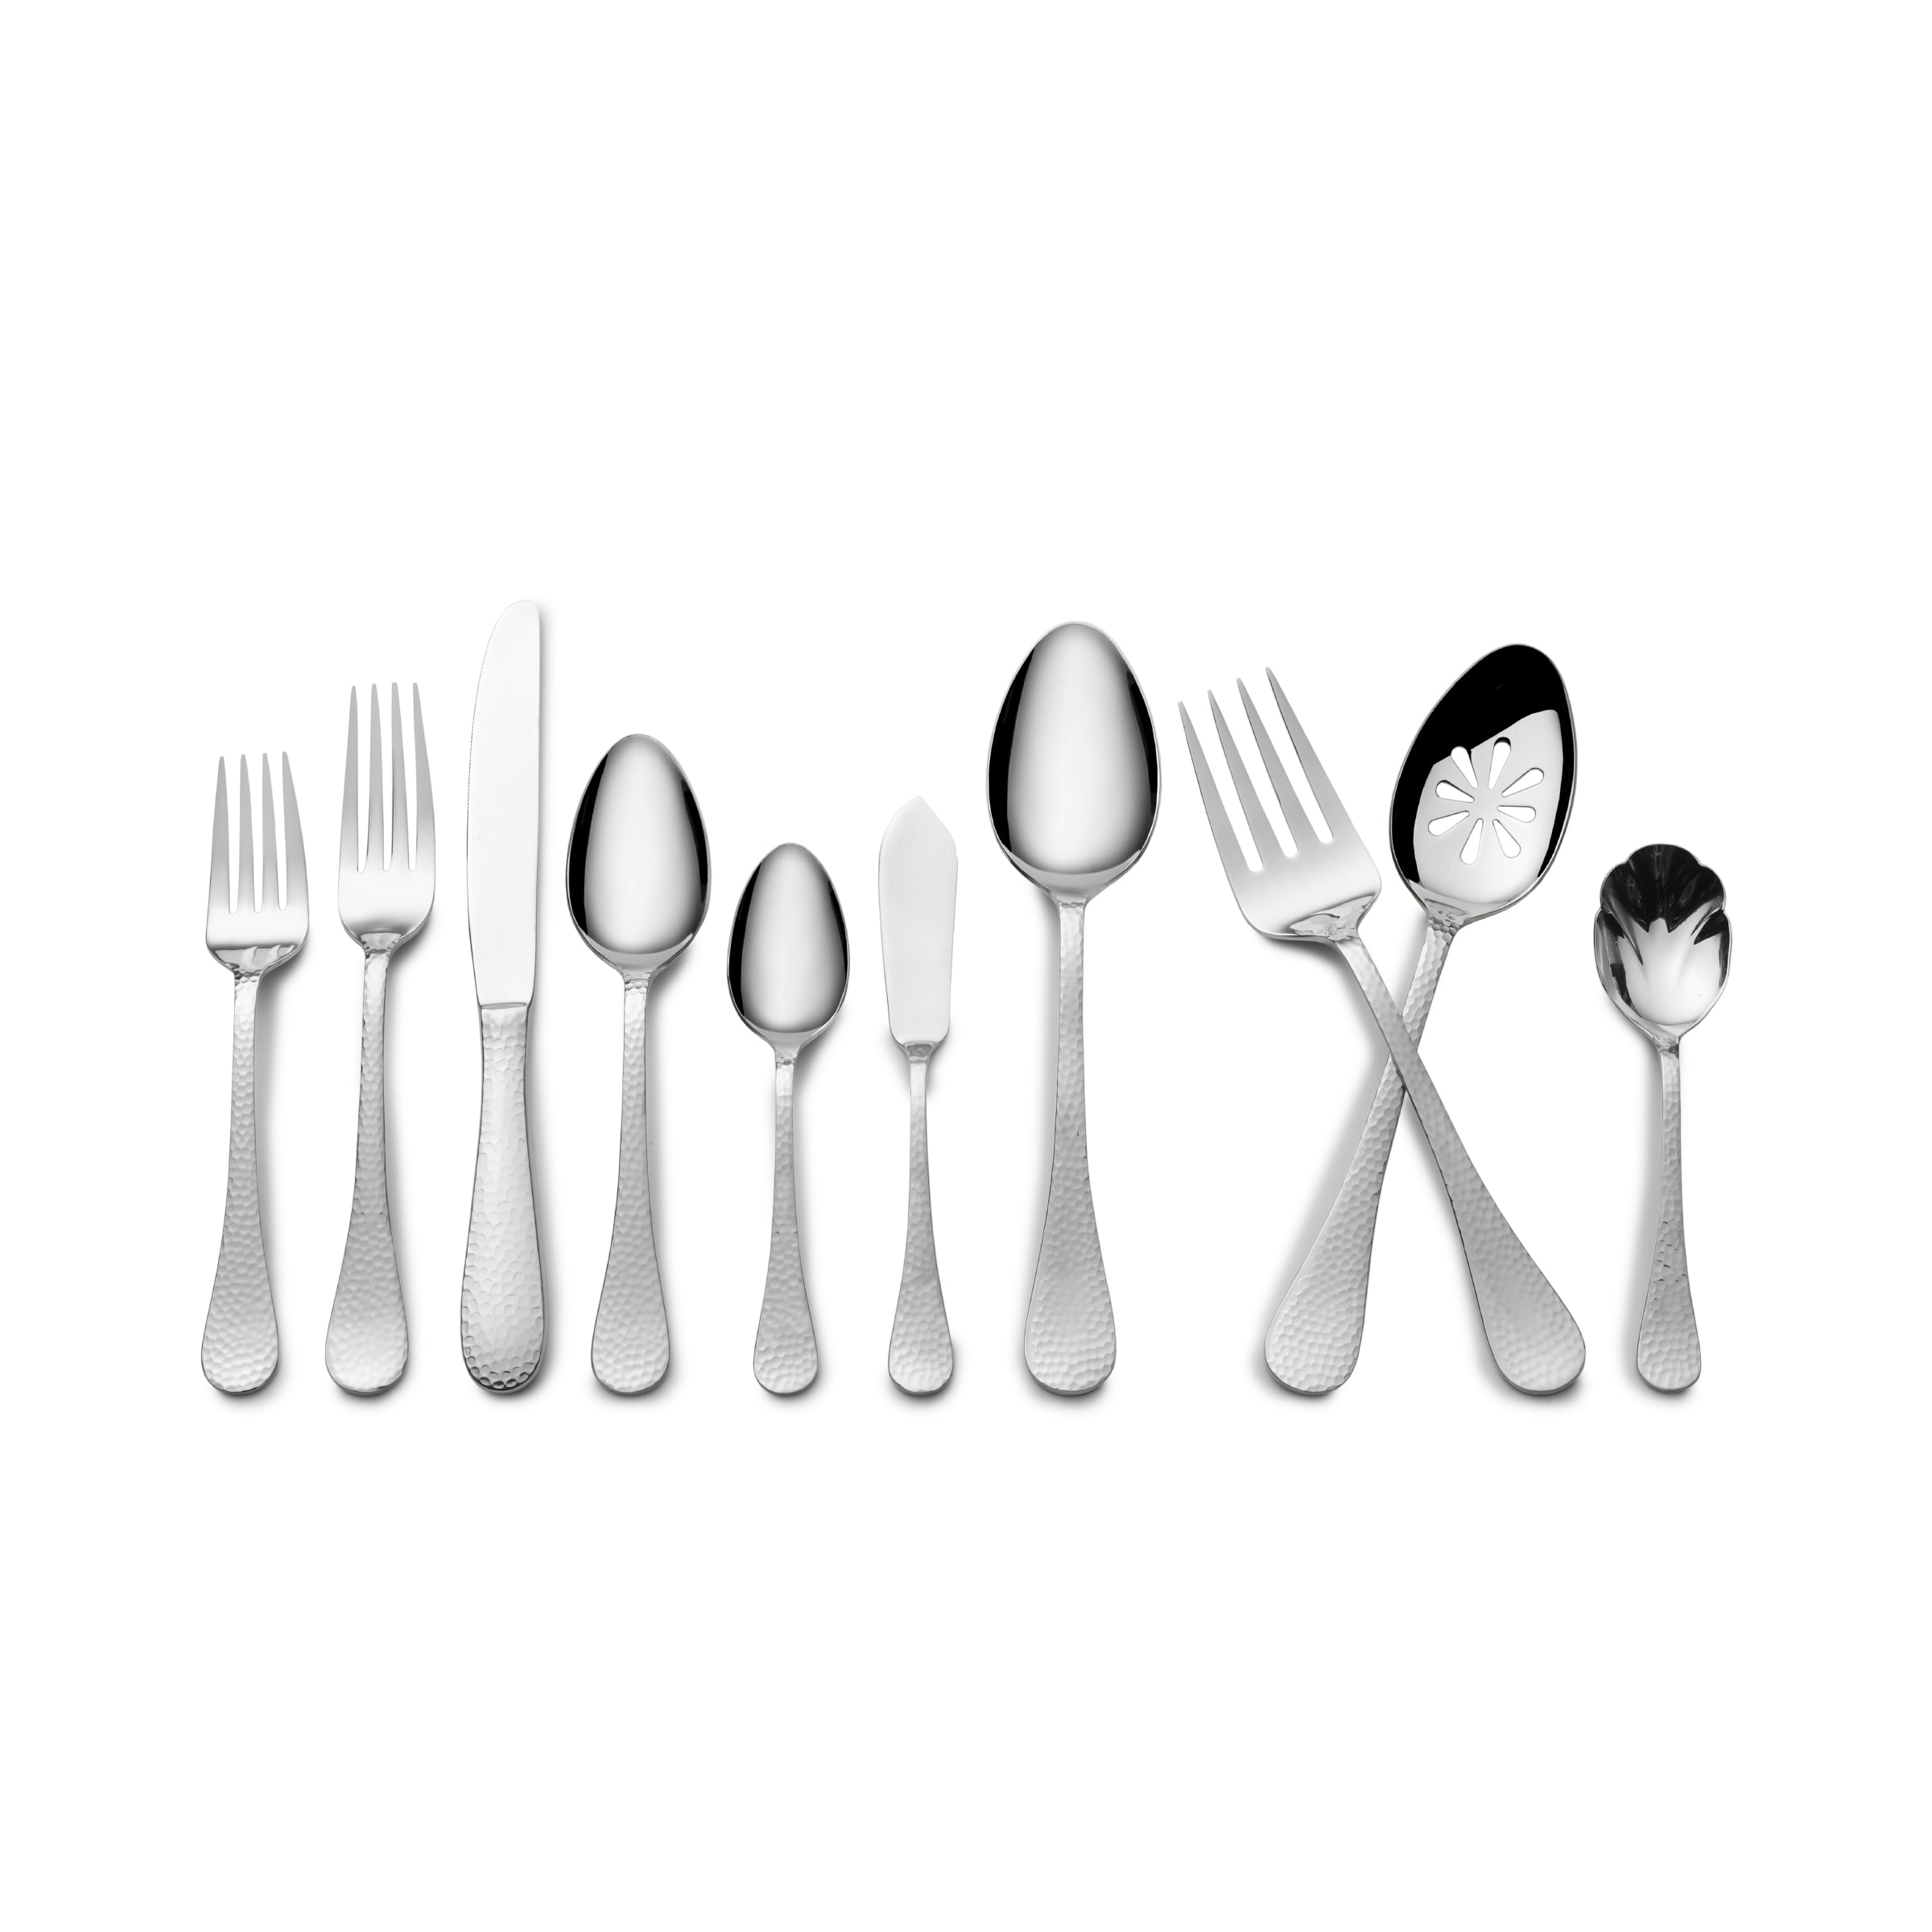 Wallace CONTINENTAL BEAD Stainless NEW 18//0 China Silverware CHOICE Flatware